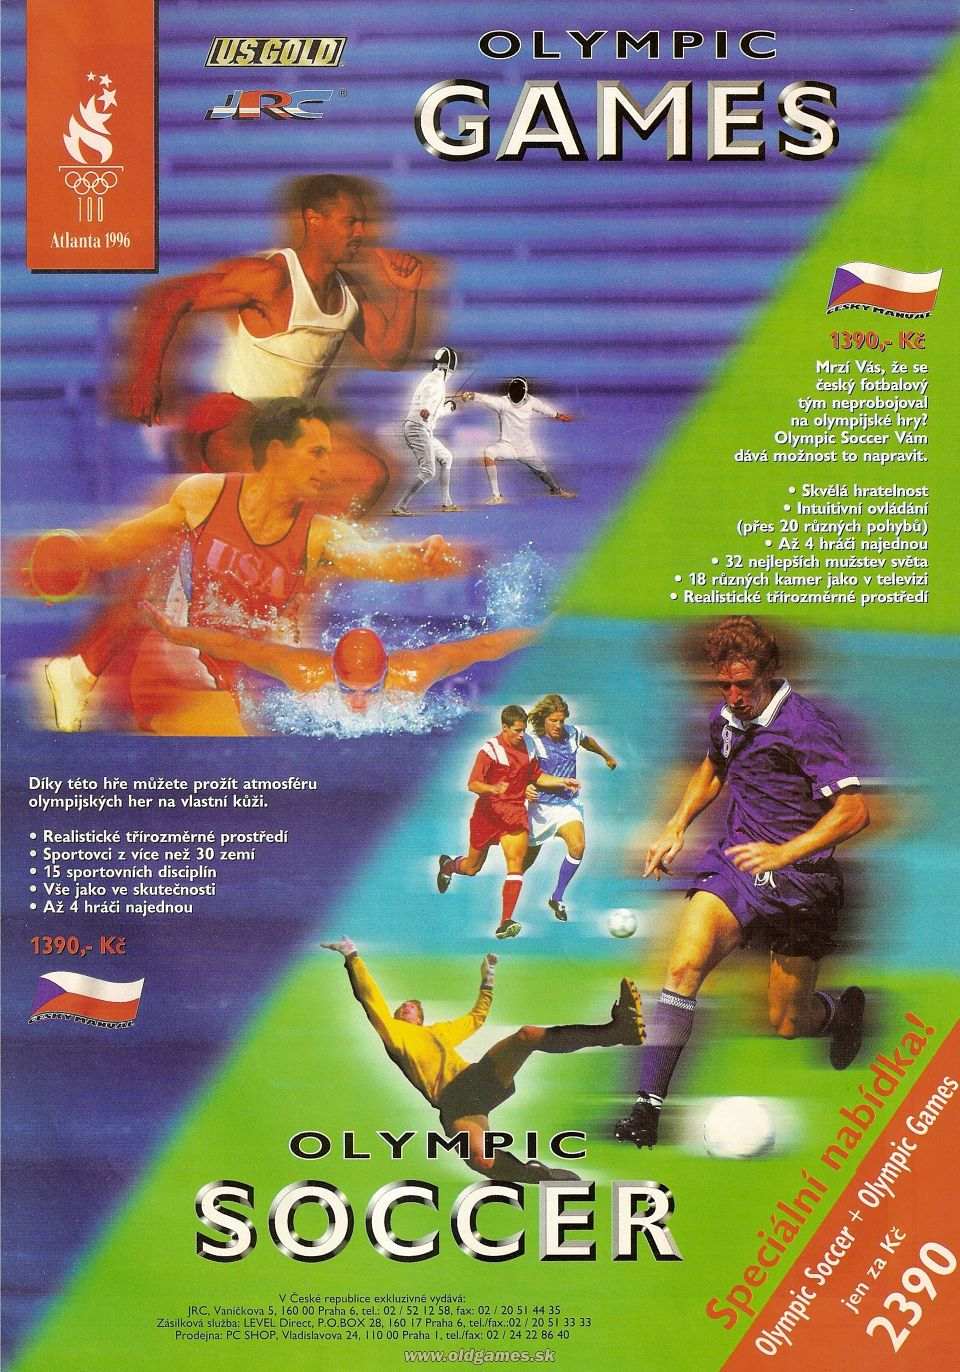 reklama - Olympic Games, Olympic Soccer